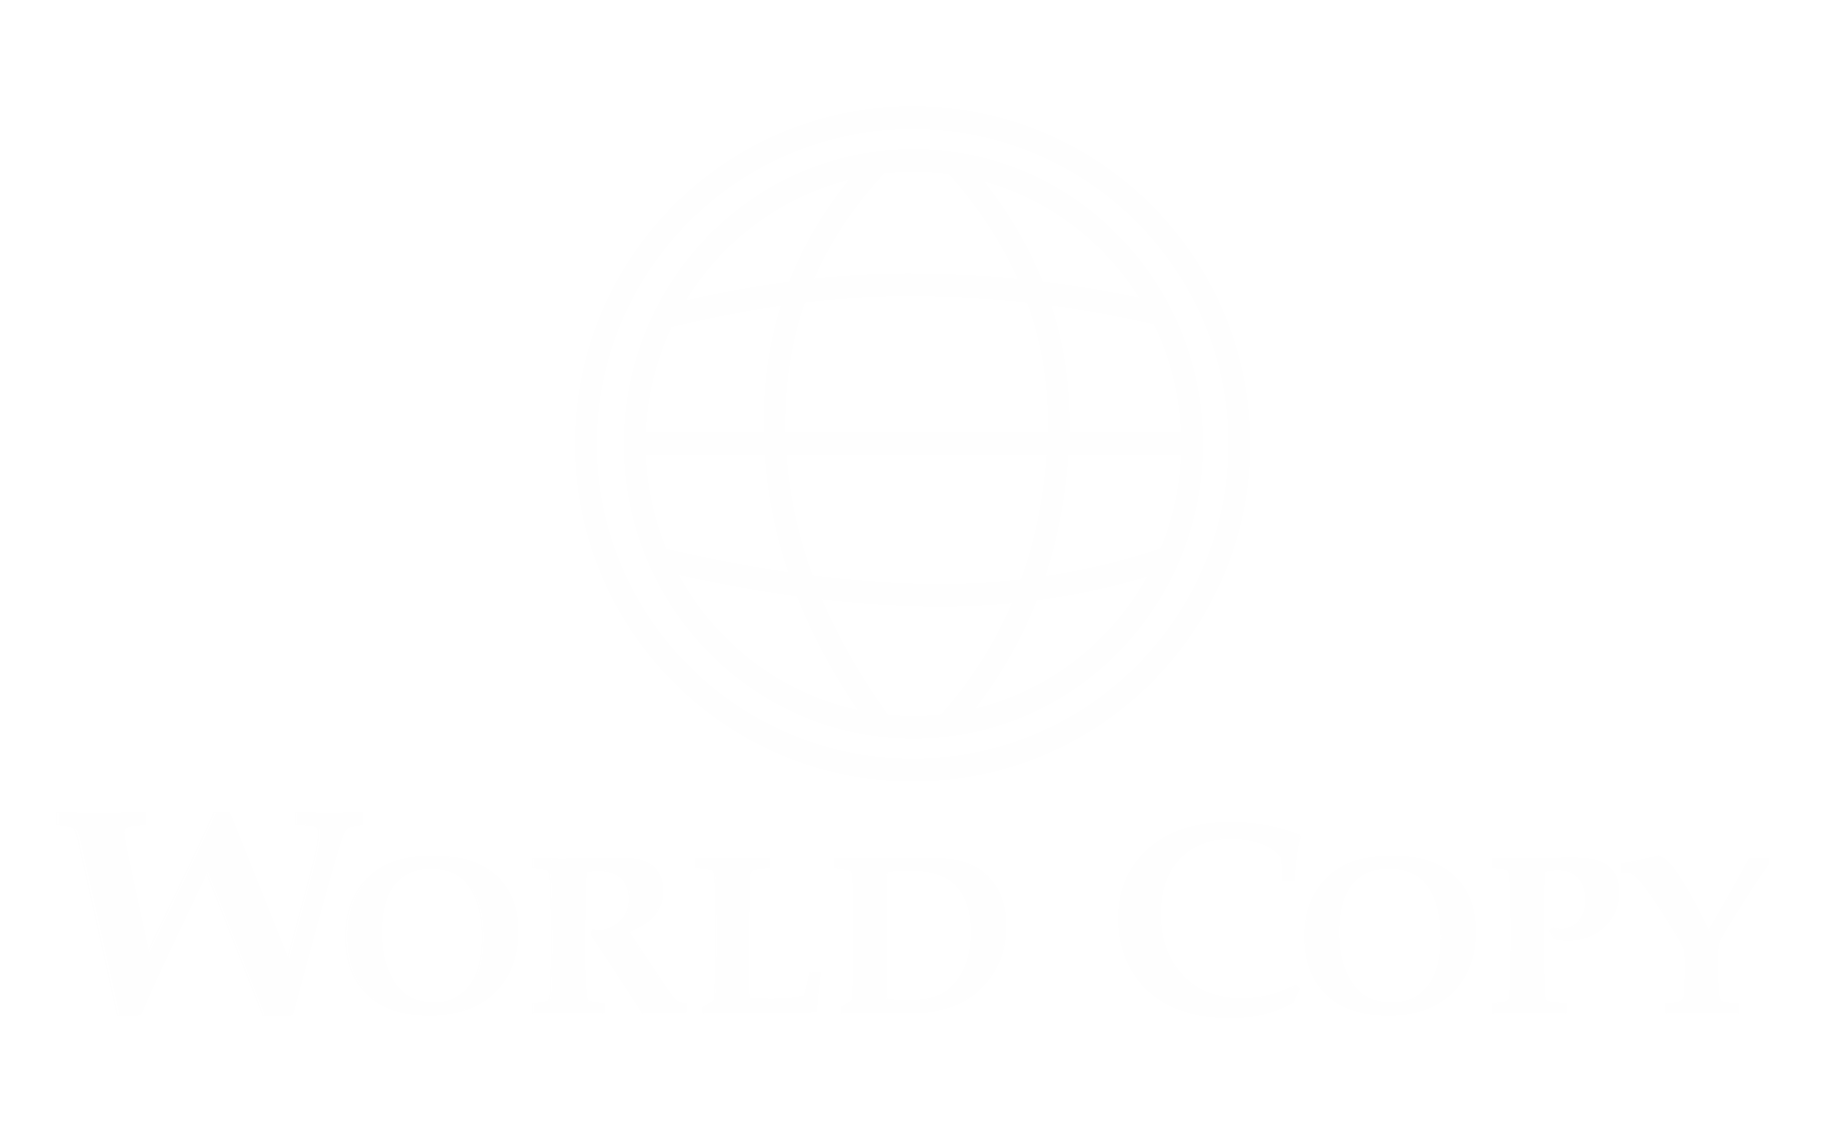 World Copy Copiadoras | Outsourcing de Impressão | Gráfica Digital